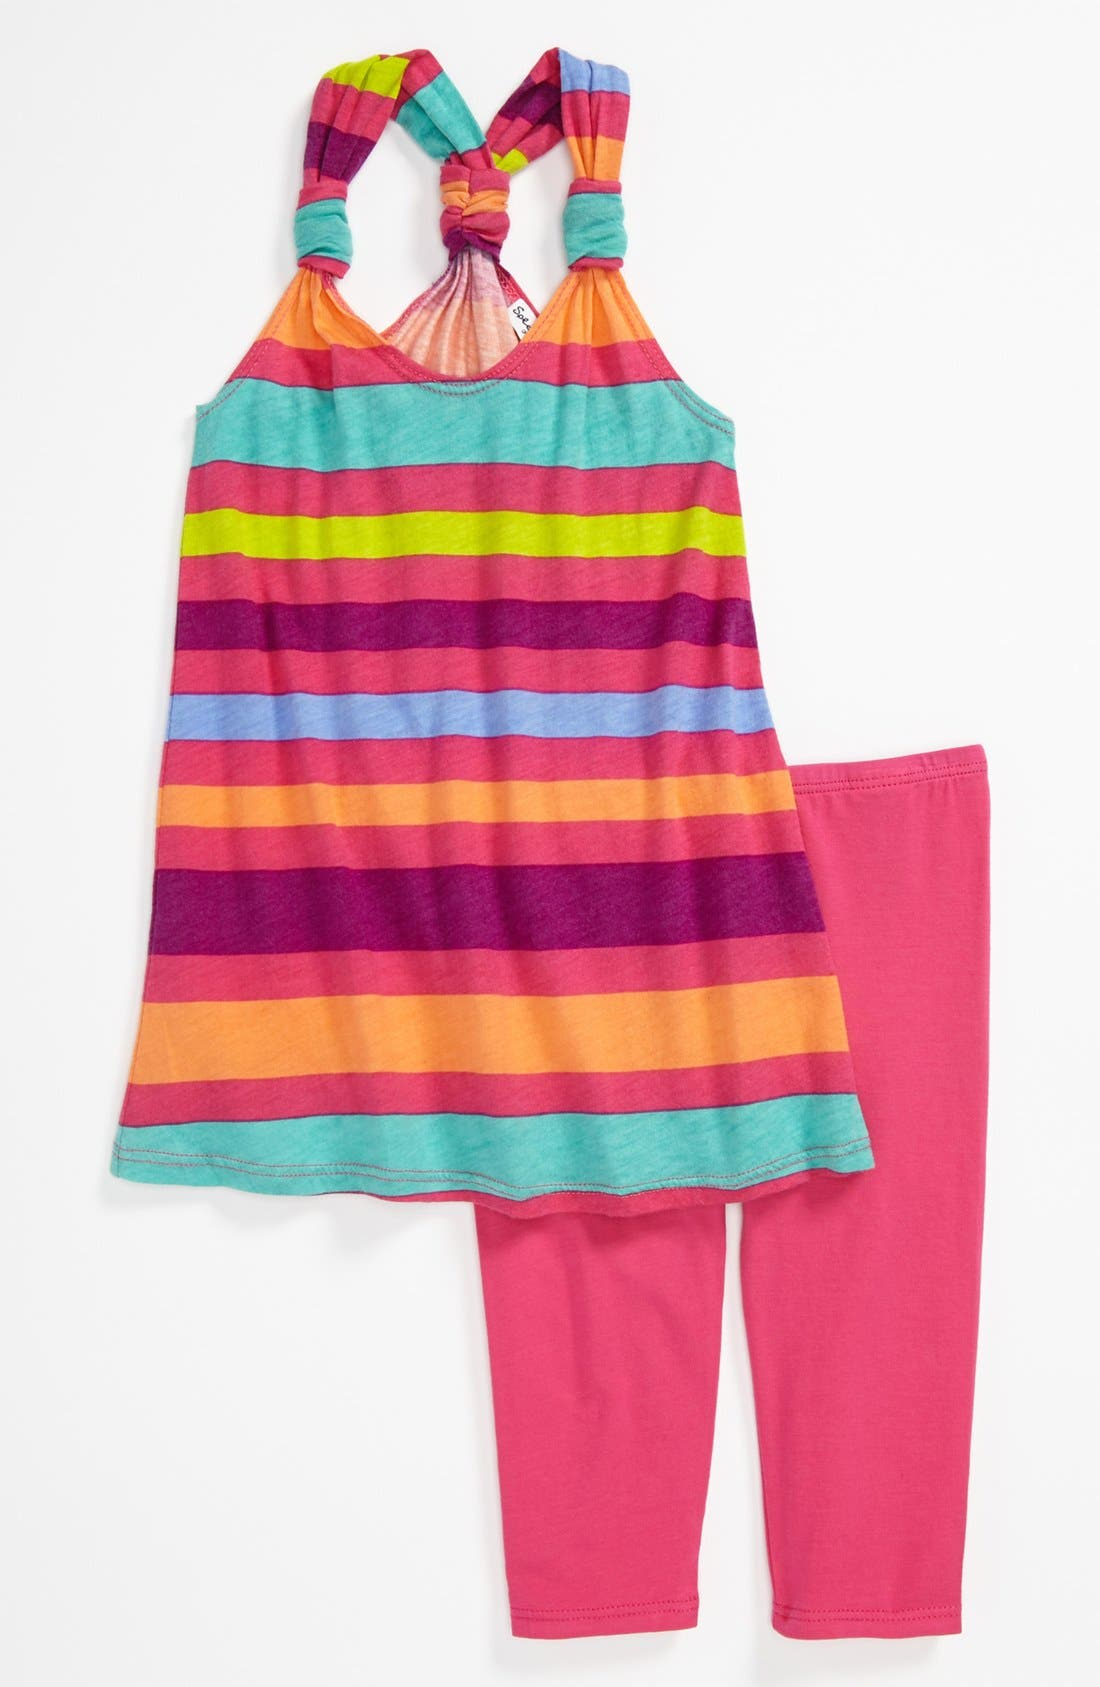 Alternate Image 1 Selected - Splendid 'Carnival Stripe' Tank Top & Leggings (Toddler)